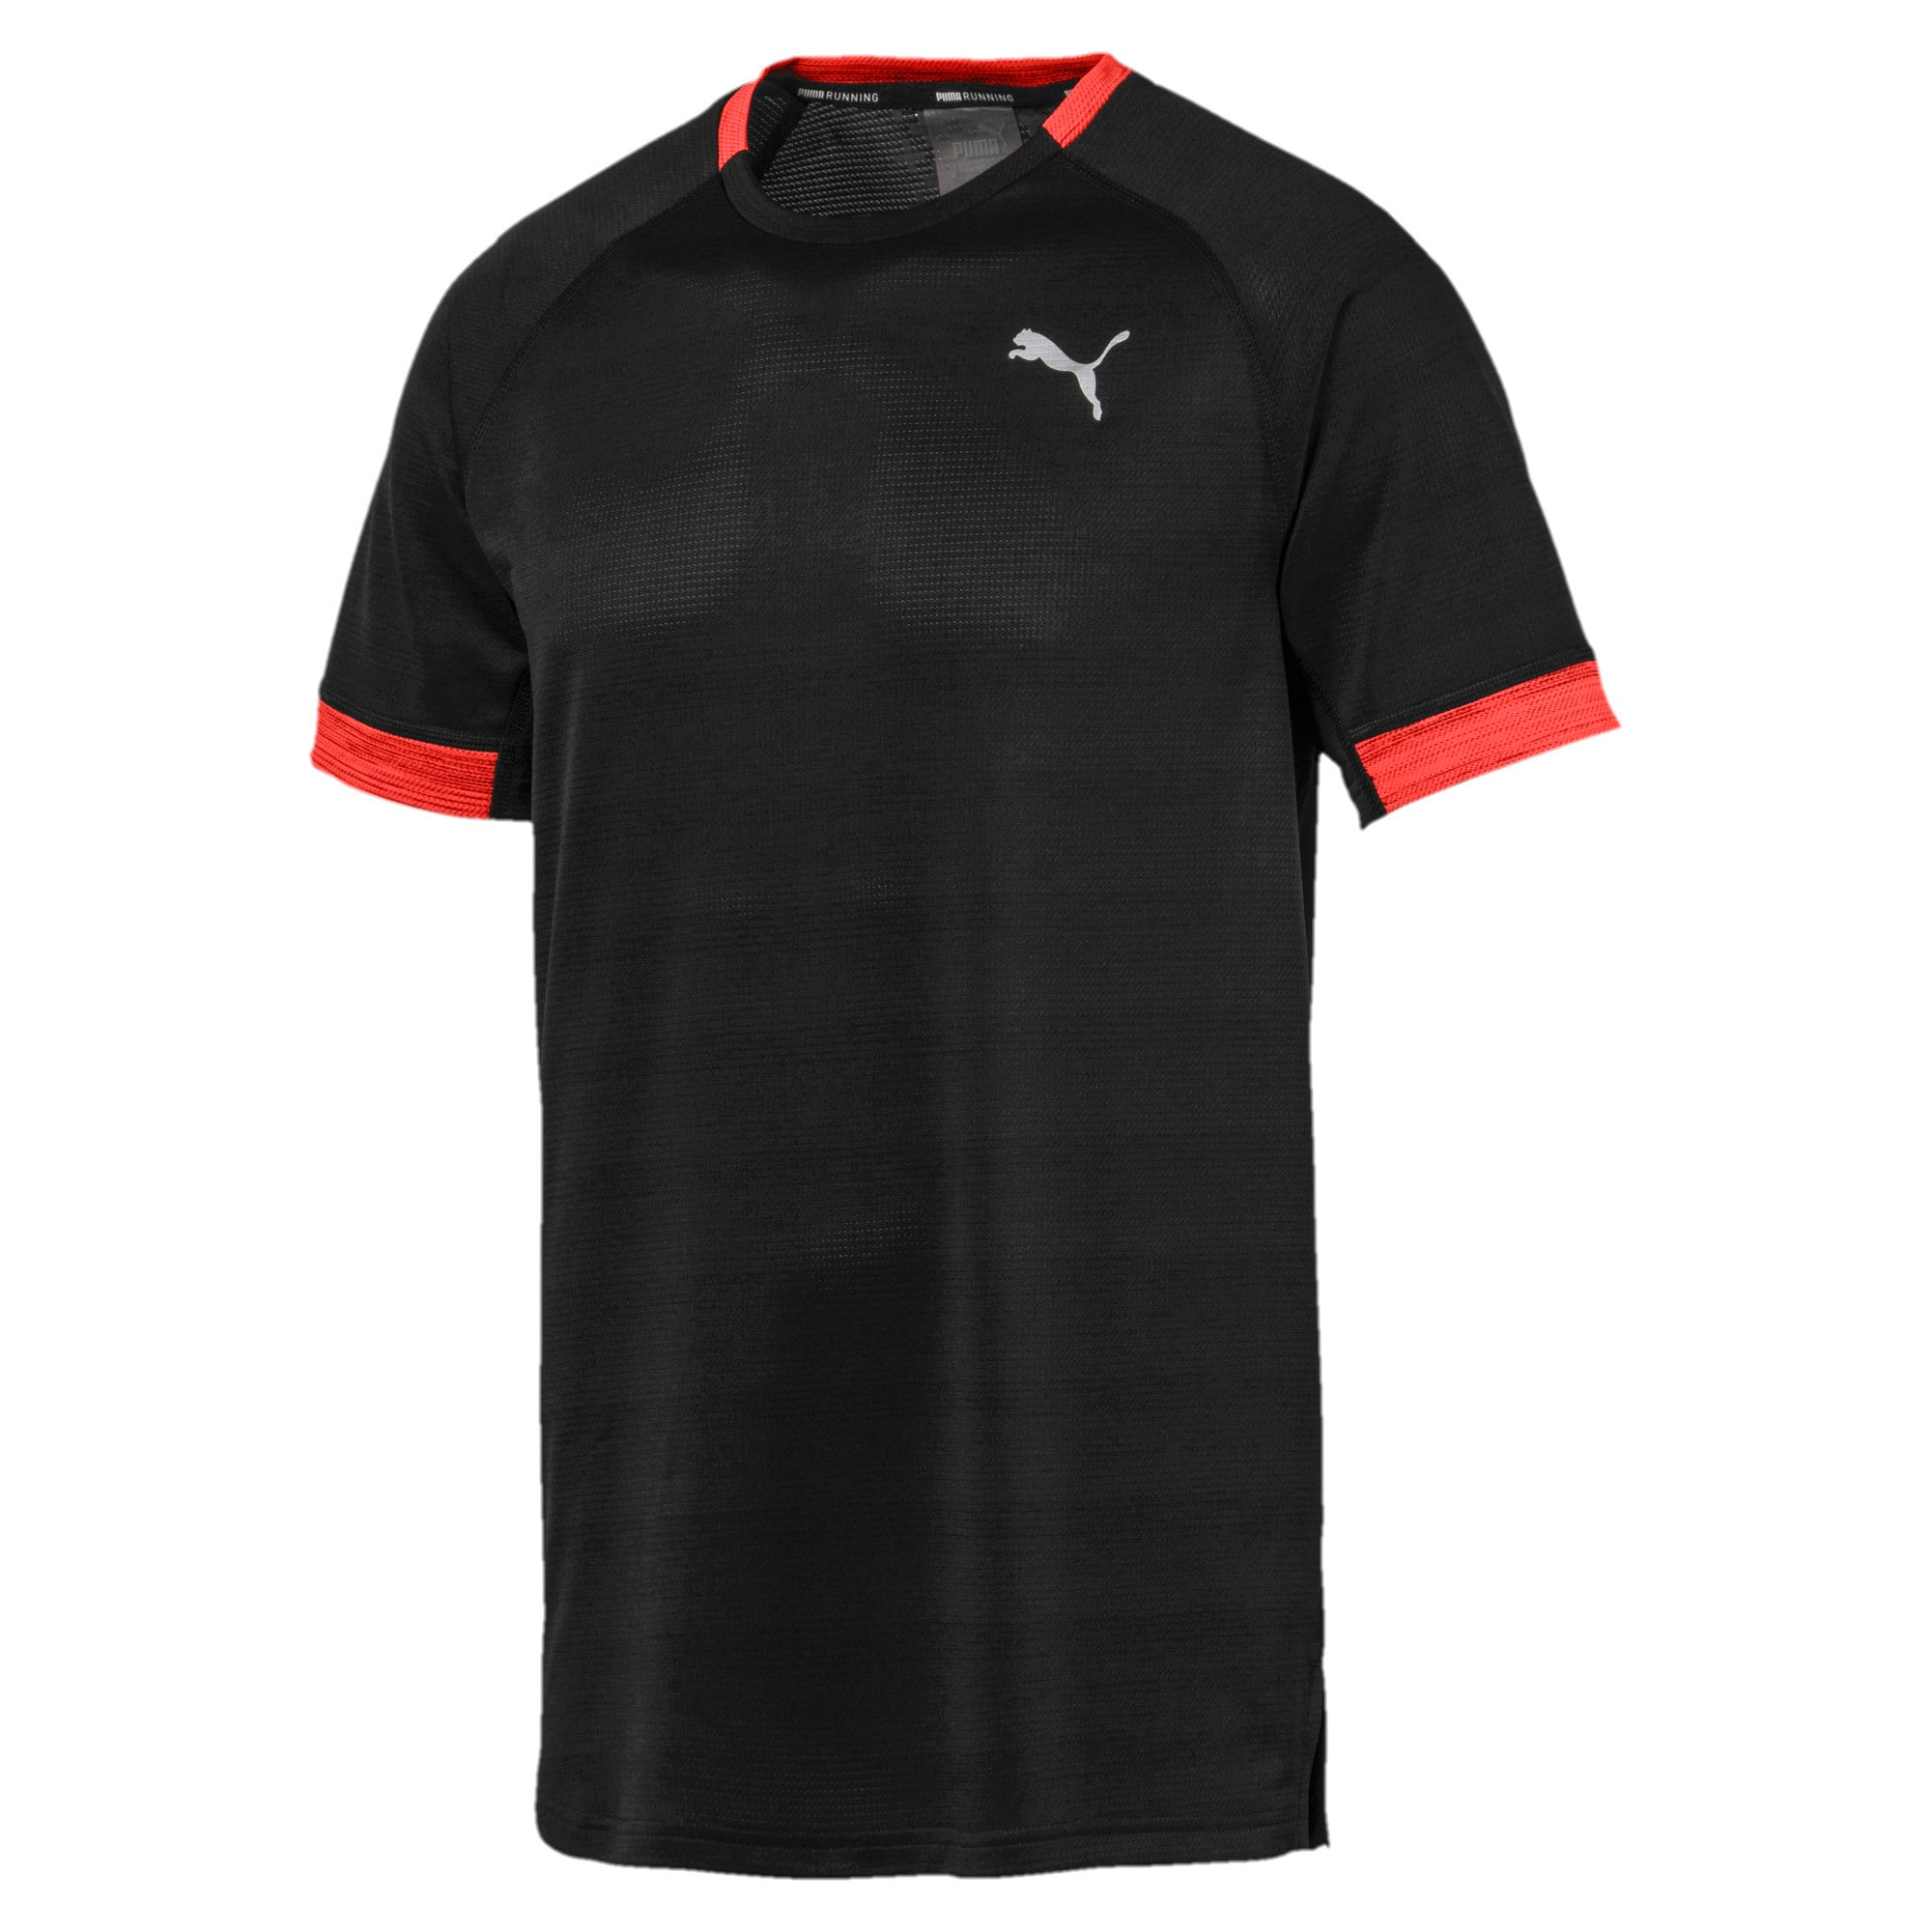 Thumbnail 4 of Get Fast THERMO R+ Men's Running Tee, Black Htr-Nrgy Red Htr, medium-IND